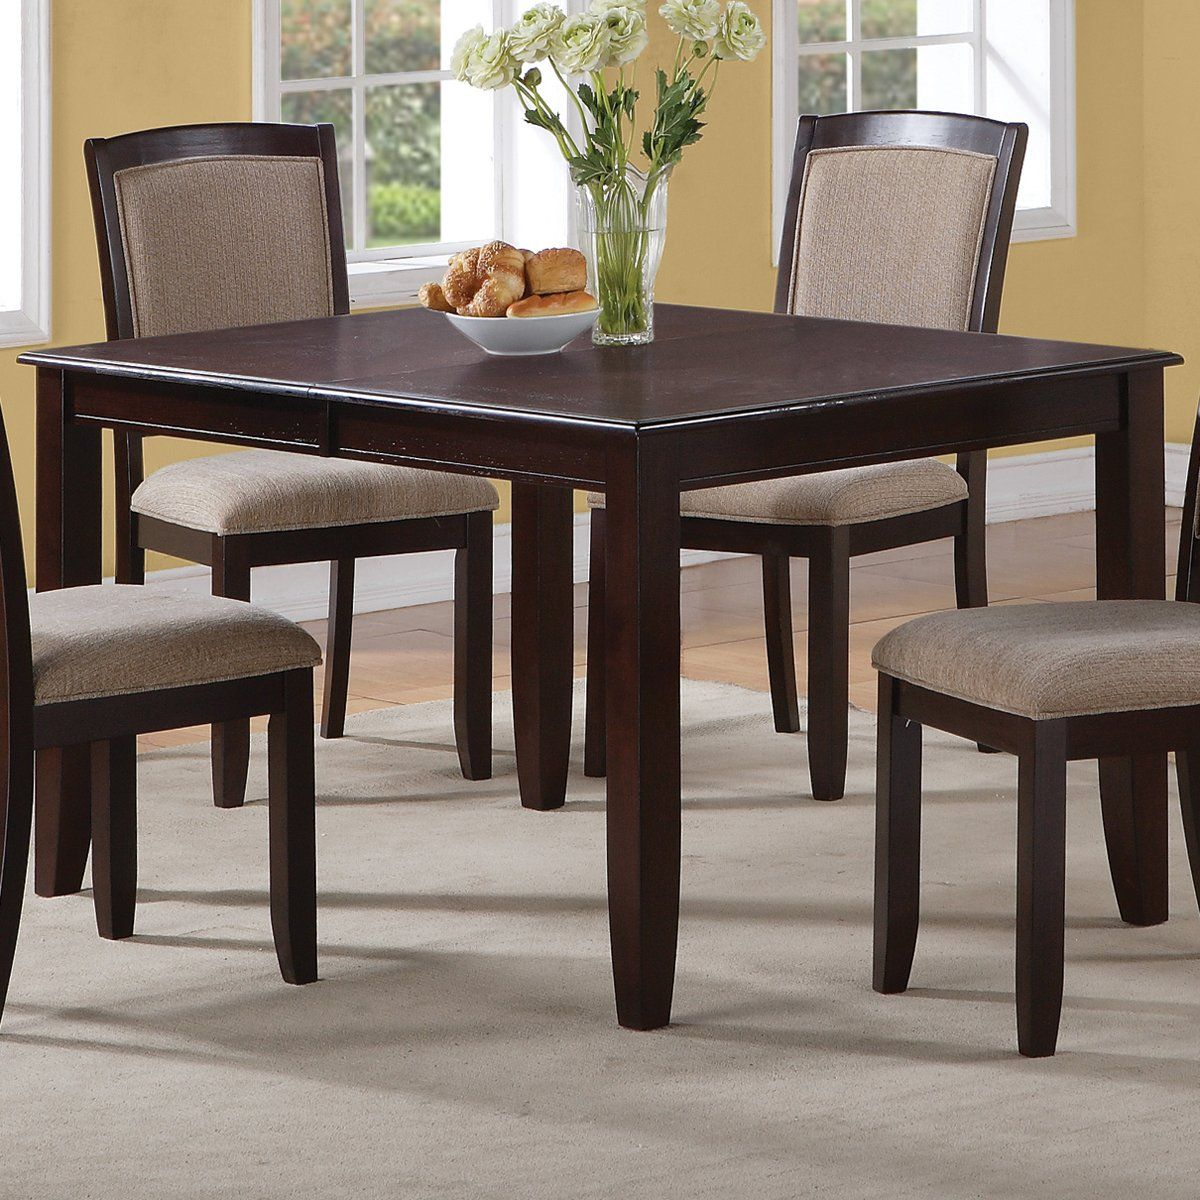 Coaster Fine Furniture 102756 Dining Table | Fabric dining room, Rectangular dining table ...